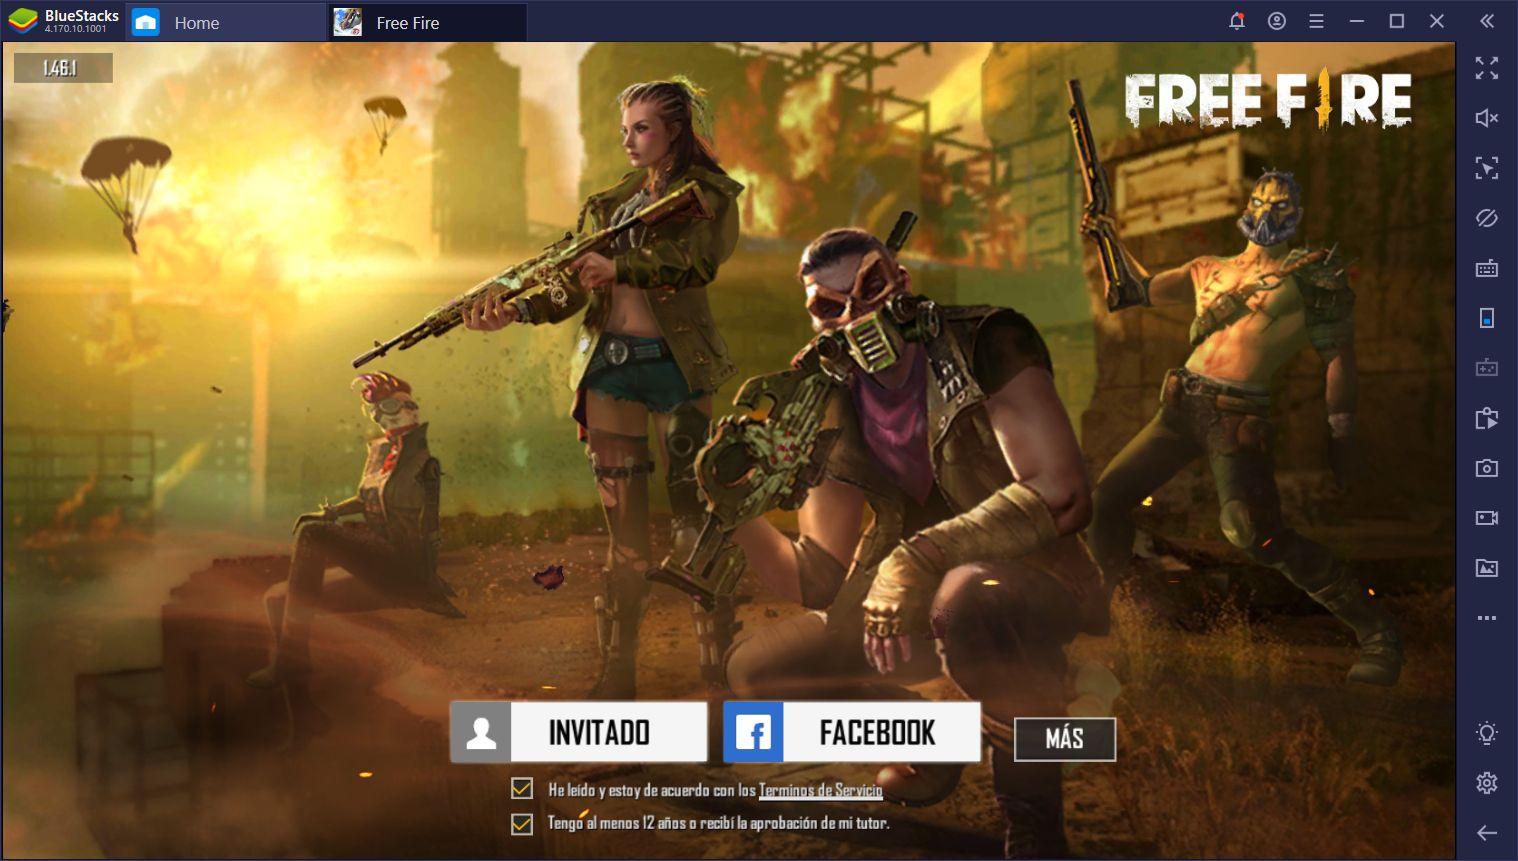 Uninterrupted Booyahs in Garena Free Fire with Smart Controls only on BlueStacks